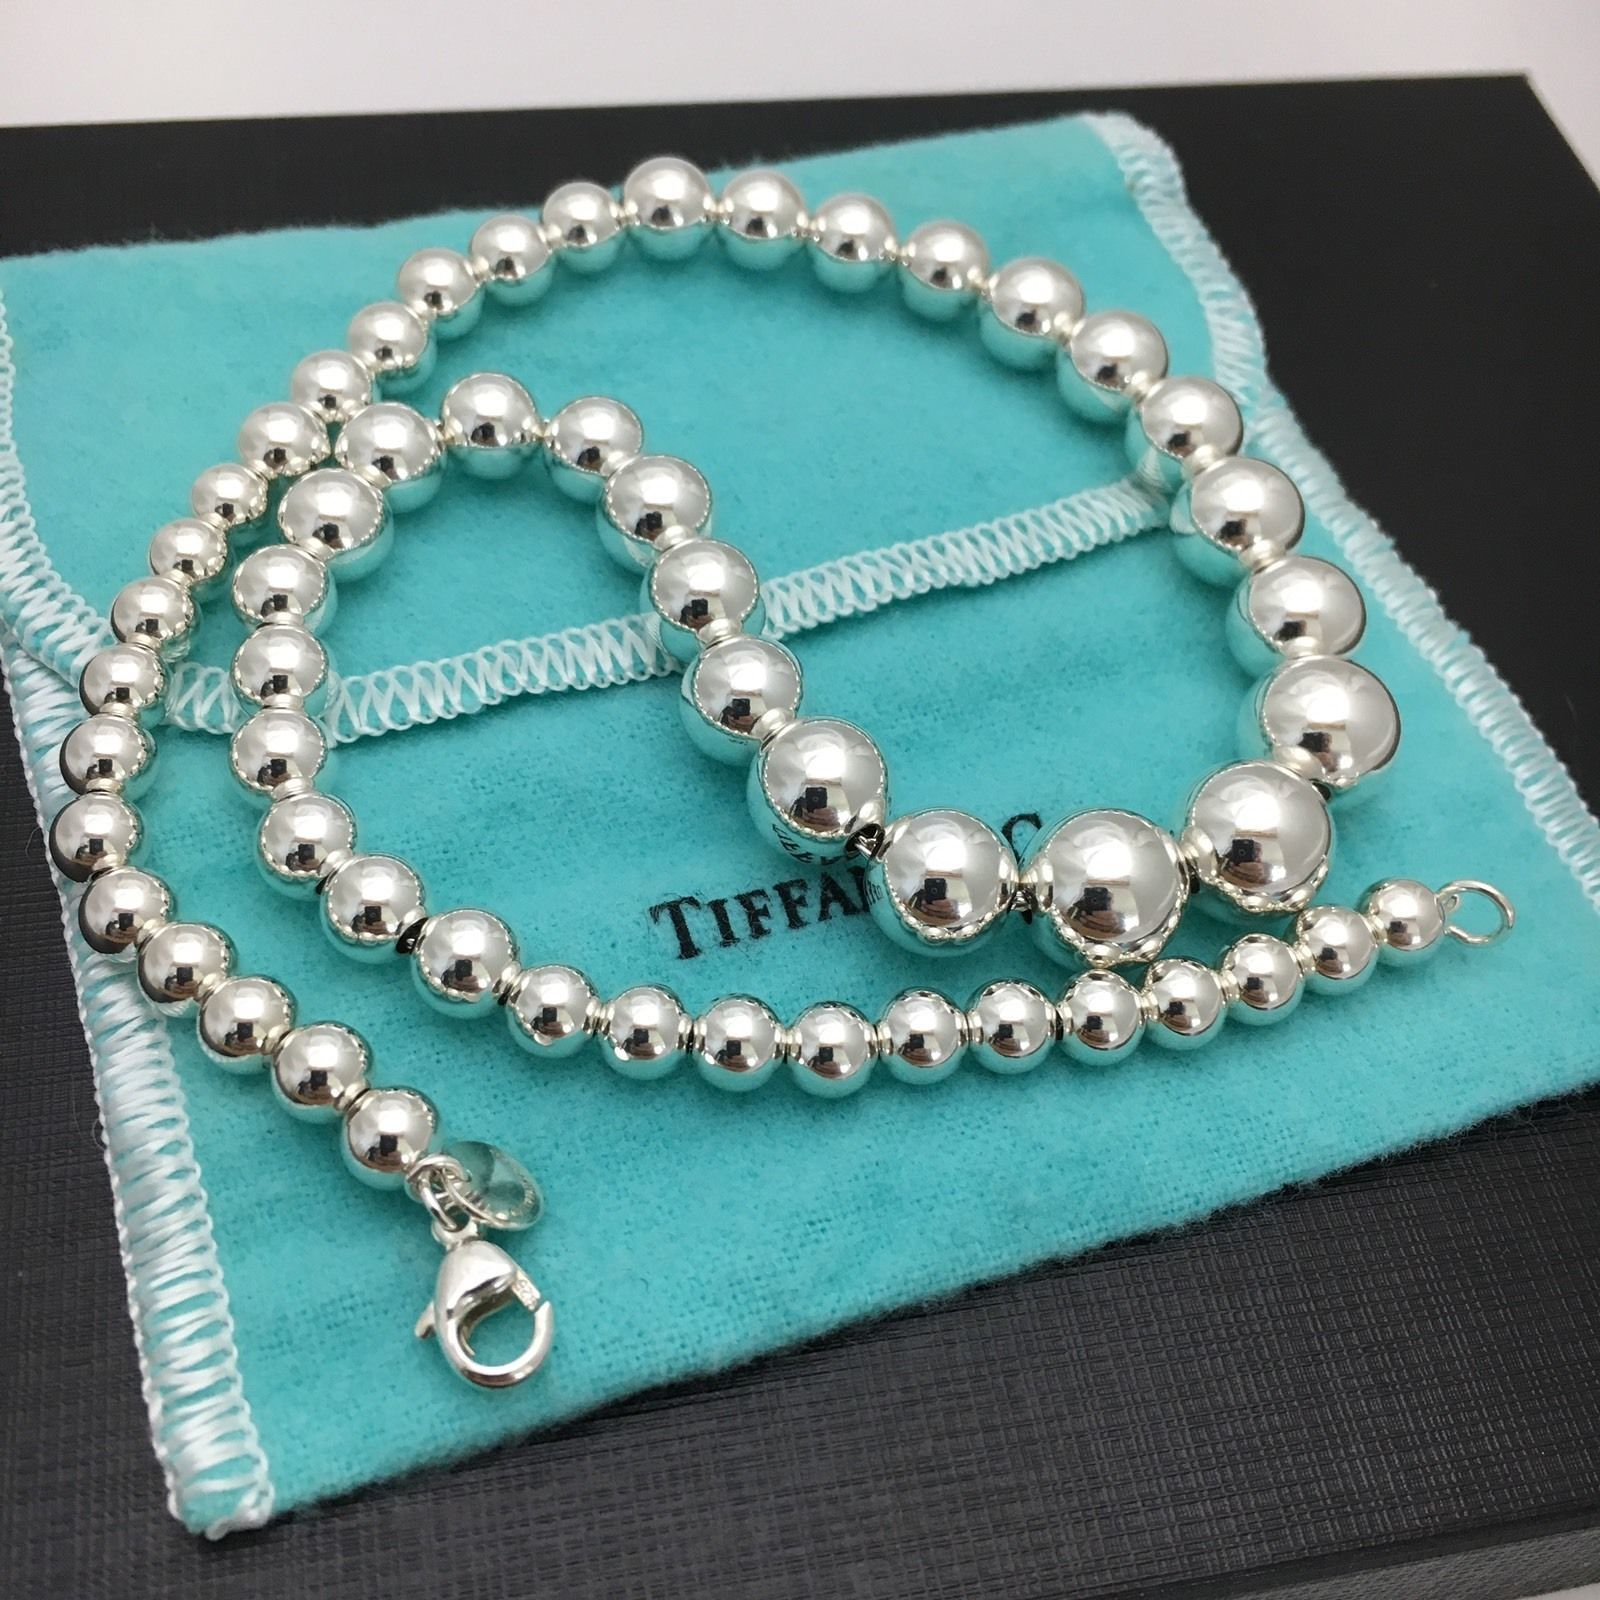 9b9ef8393 57. 57. Previous. Tiffany & Co Sterling Silver Bead Ball Graduated Bead  Necklace. Tiffany & Co Sterling ...